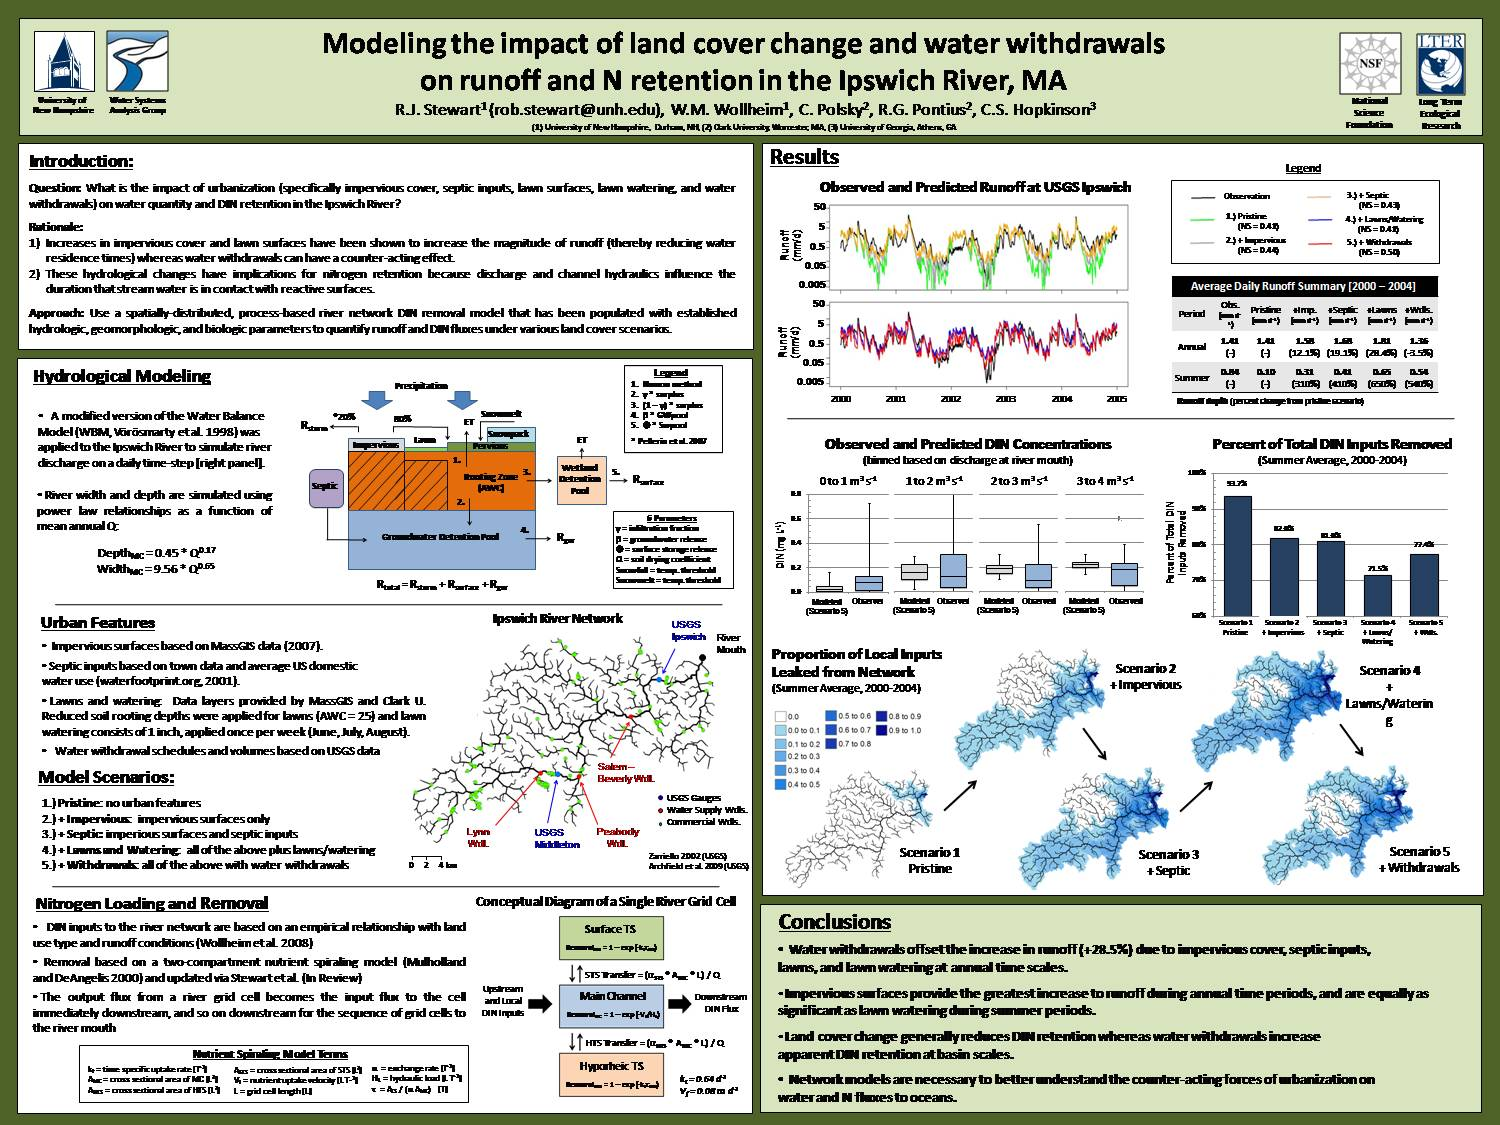 Modeling The Impact Of Land Cover Change And Water Withdrawals On Runoff And N Retention In The Ipswich River, Ma by stewart